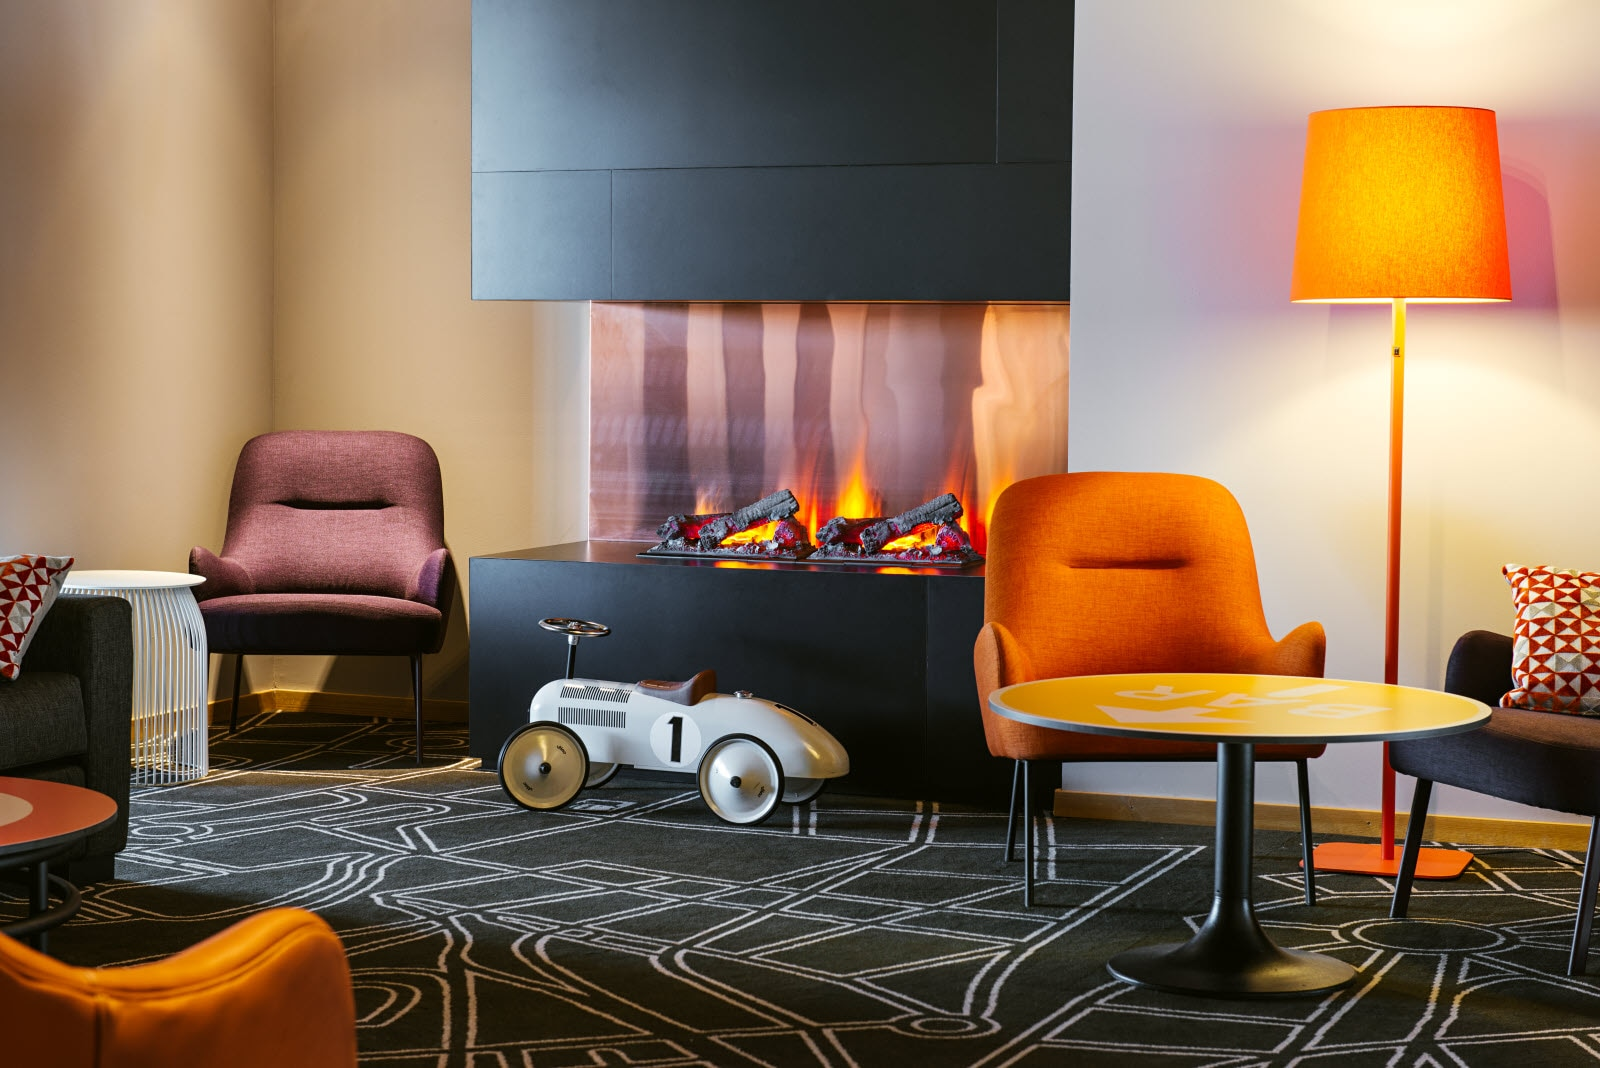 Scandic-Elmia-Interior-lounge-fire-place.jpg